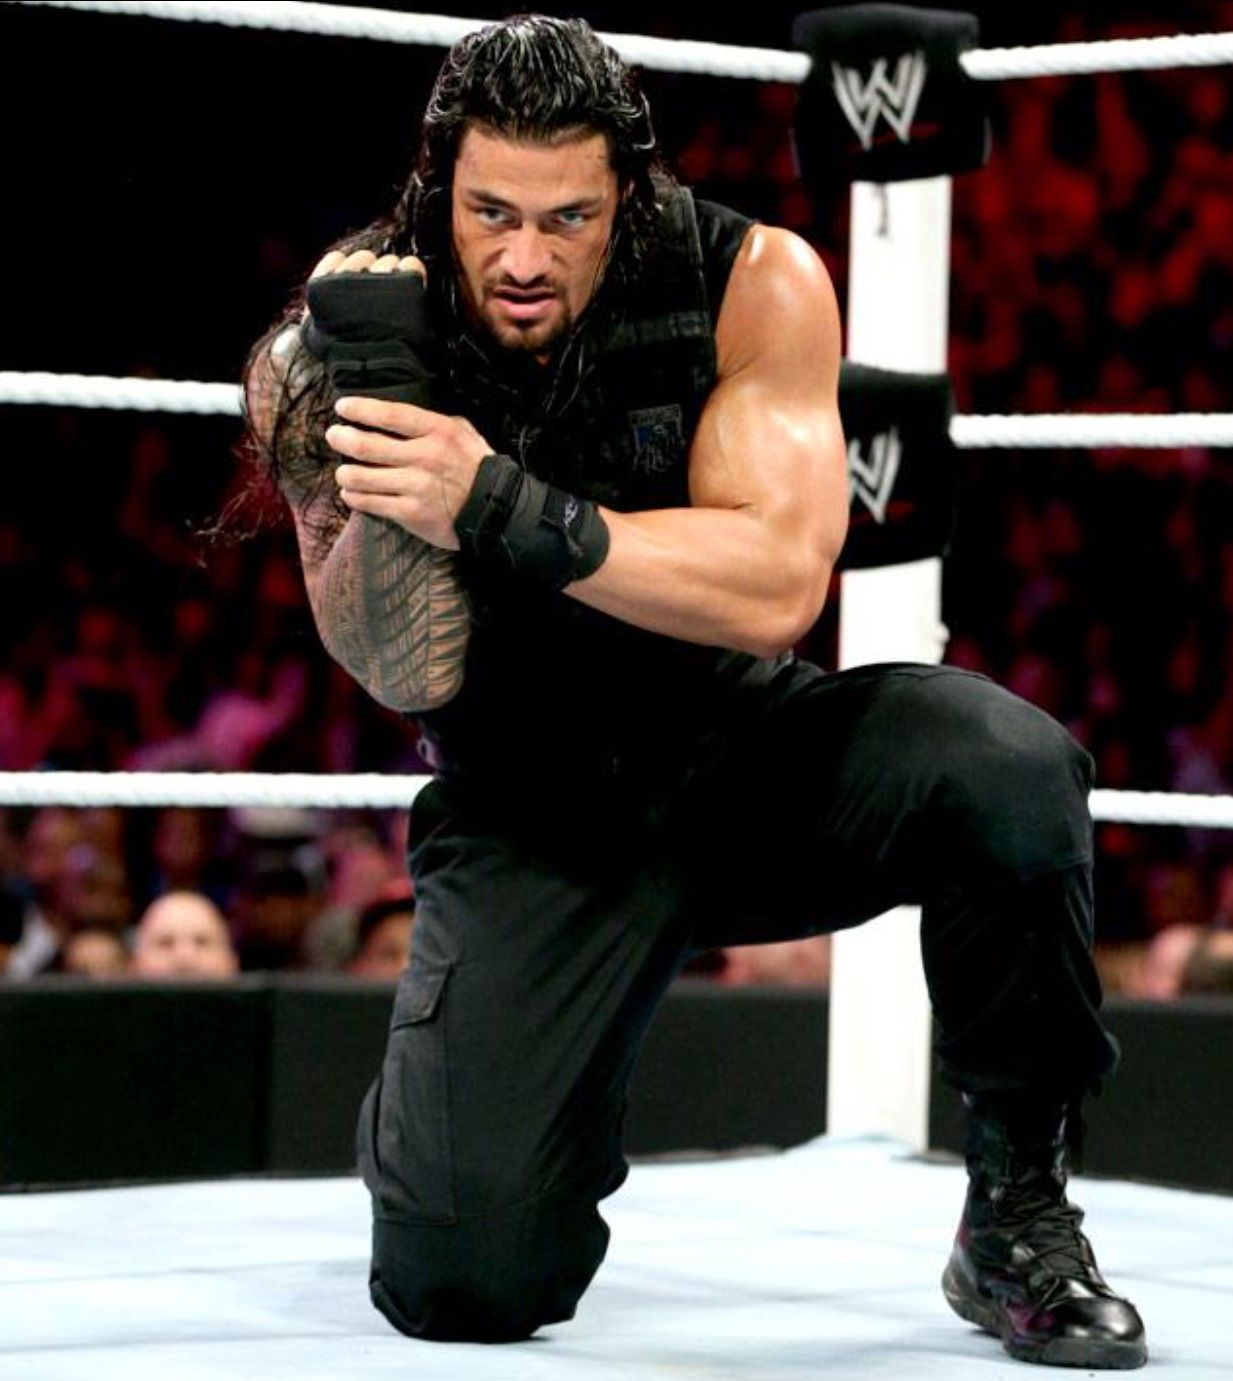 Roman reigns agrees with fans that watching wwe on tv sucks